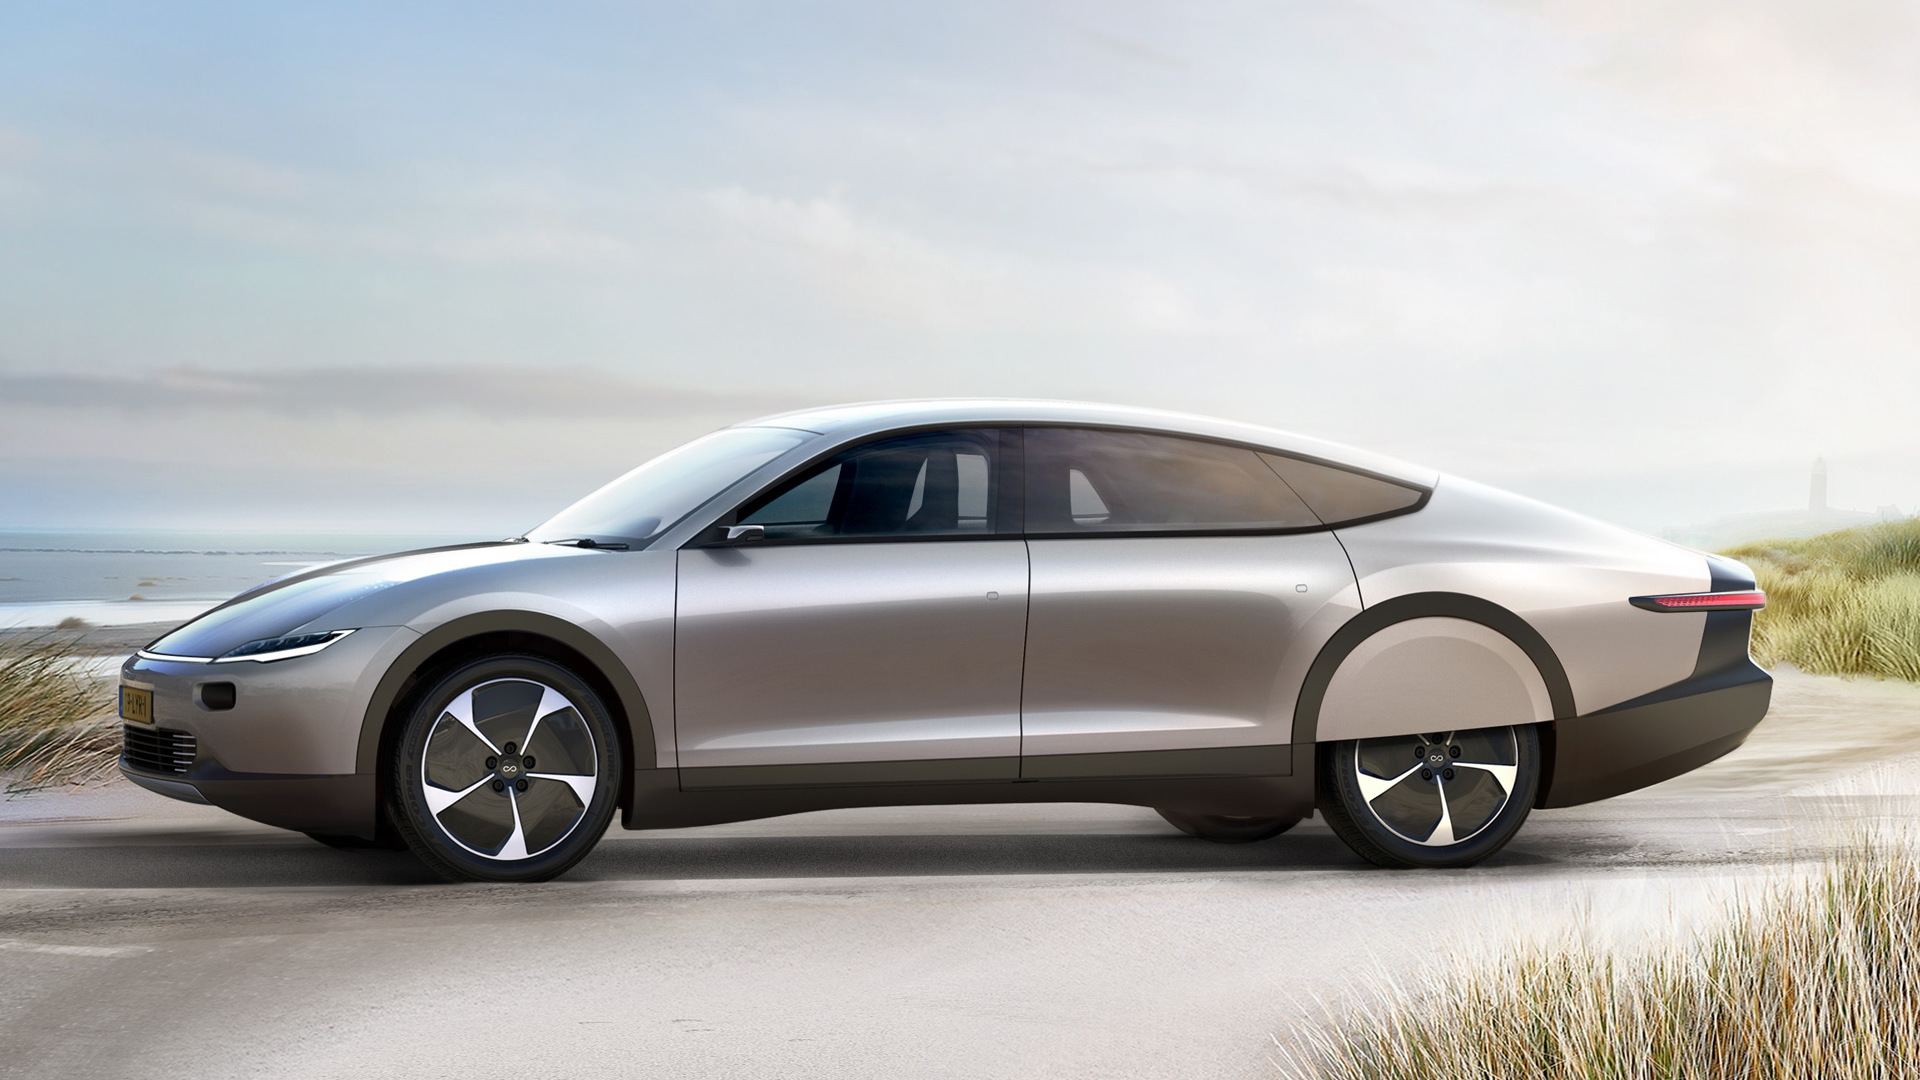 This sleek, solar-powered concept auto features 450 miles of range